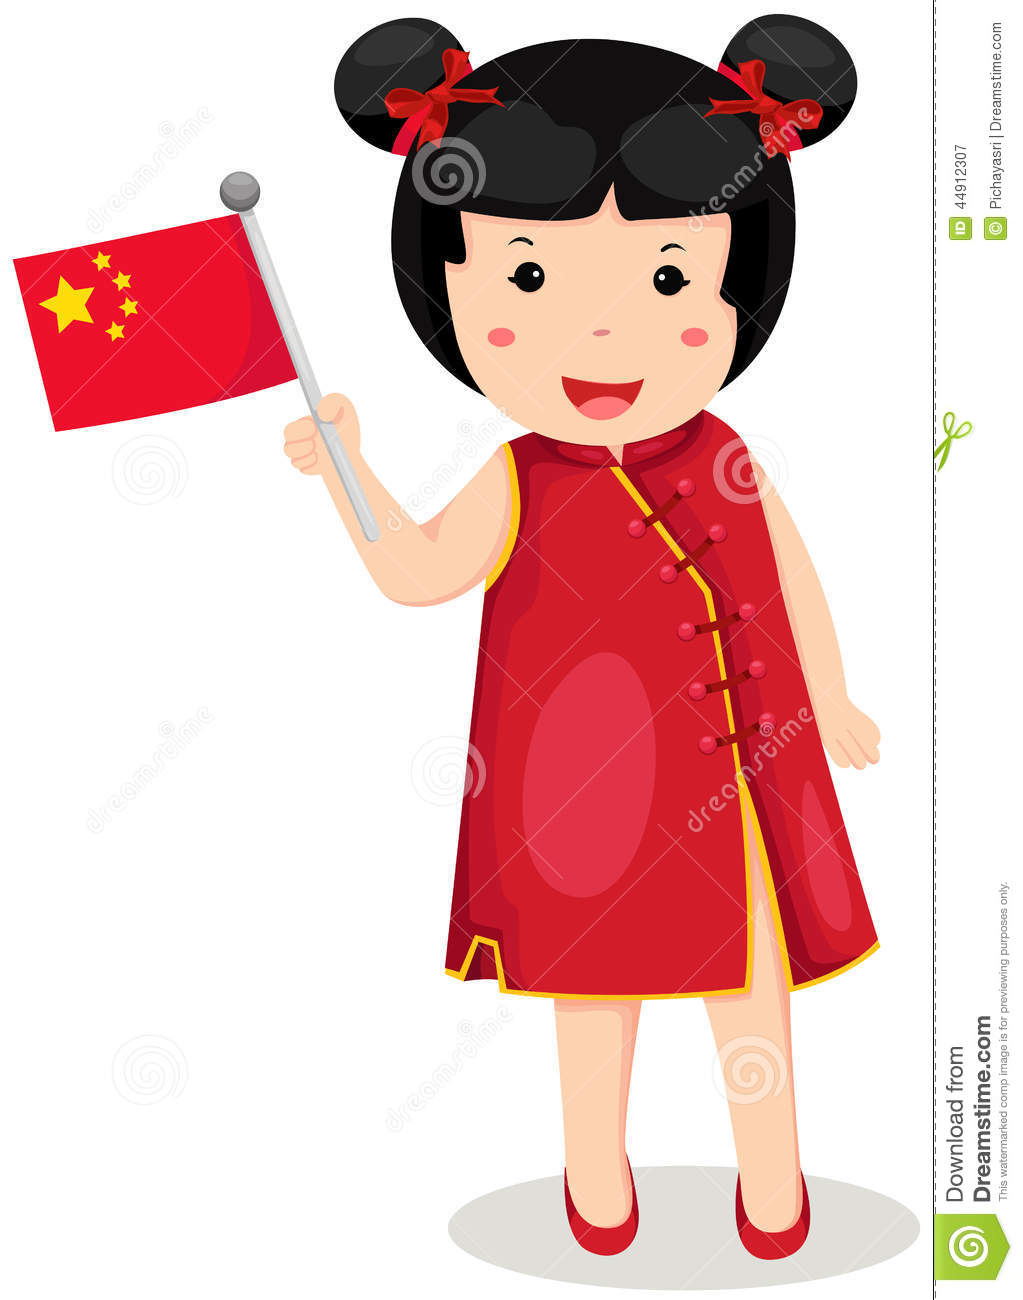 Chinese Girl Holding Flag Stock Illustrations 47 Chinese Girl Holding Flag Stock Illustrations Vectors Clipart Dreamstime